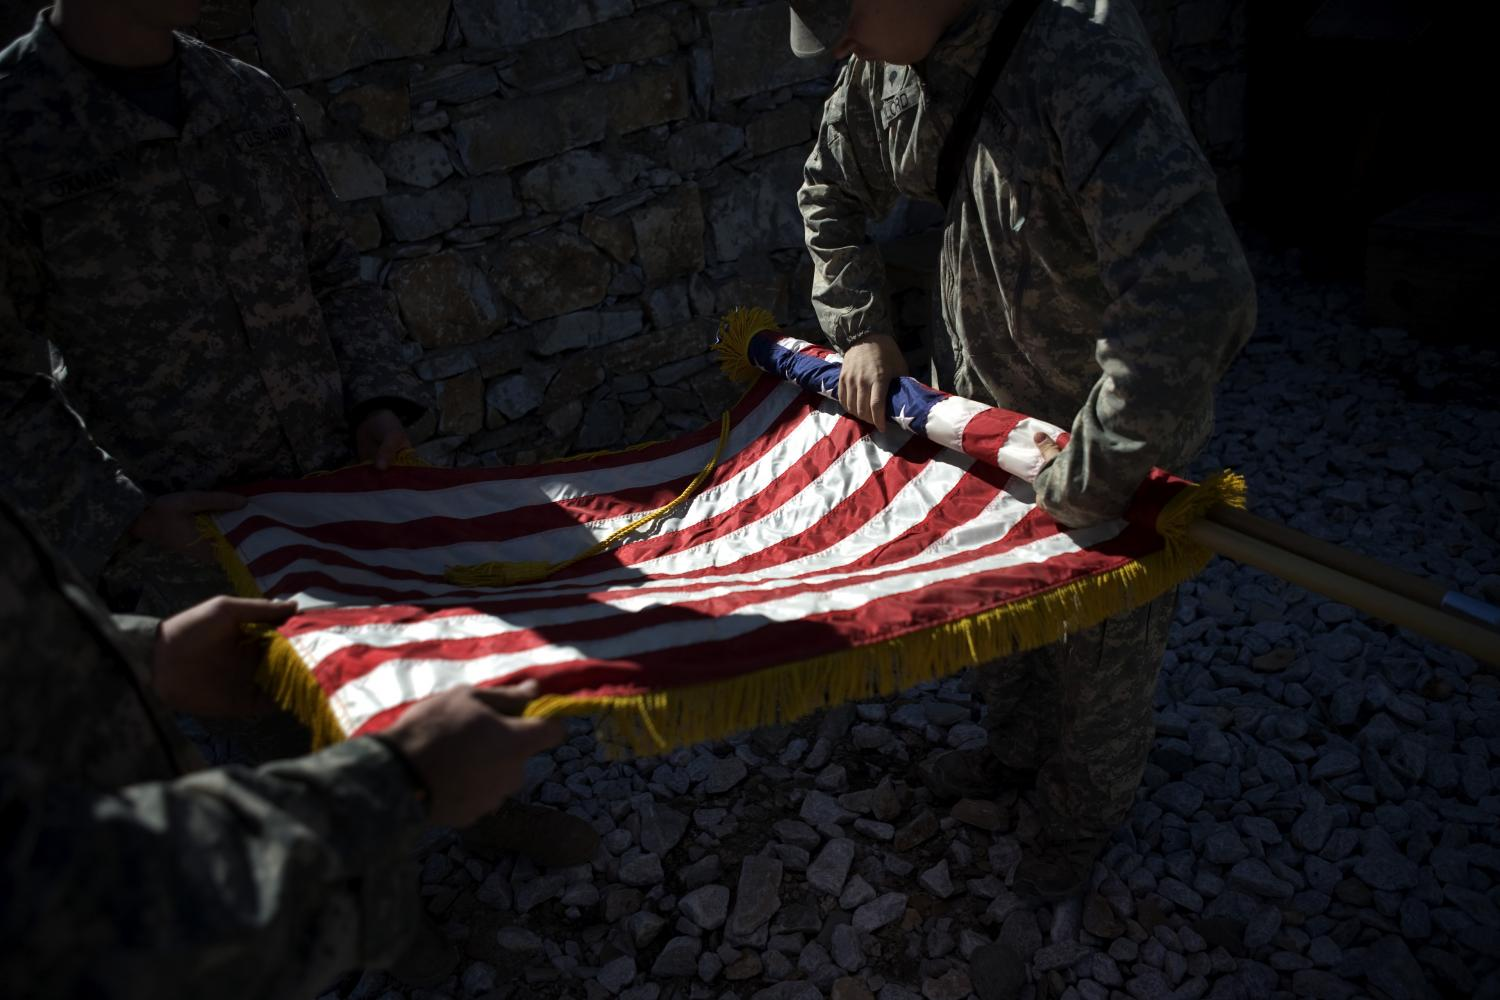 US soldiers take down a flag after a memorial service for a fallen comrade in Afghanistan's Kunar province on April 23, 2009. The last American flight from Afghanistan on Monday left behind a host of unfulfilled promises and anxious questions about the country's fate.(Photo: NYT)